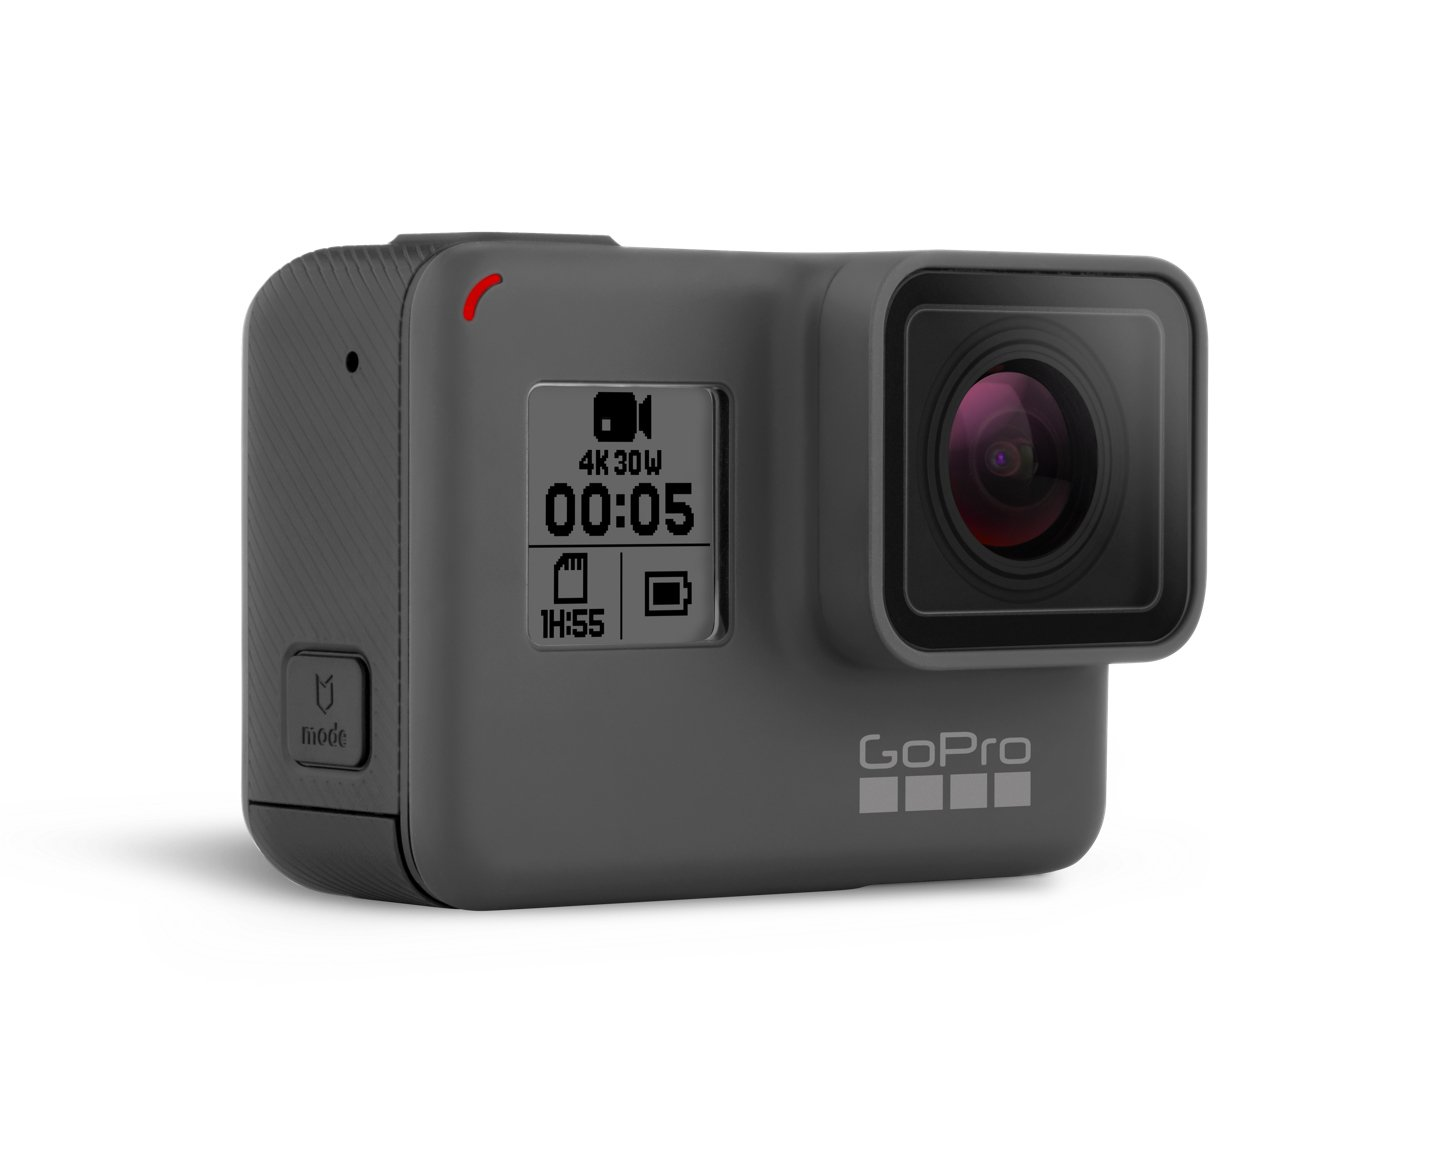 GoPro Action Camera travel gifts for men